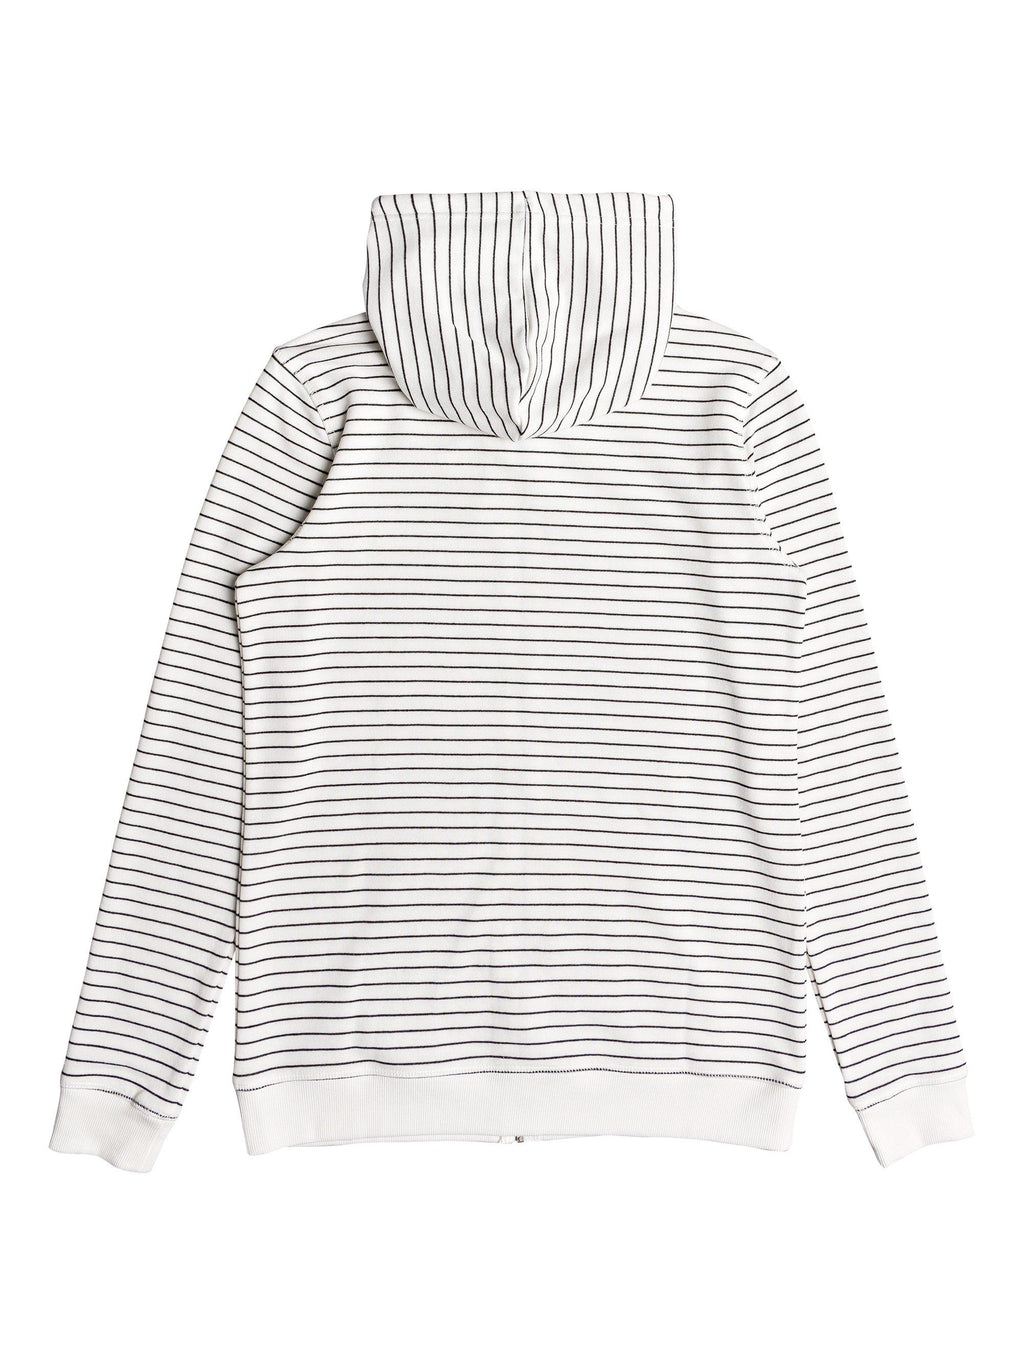 Roxy Trippin Stripes Zip-Up Hoodie - Women's